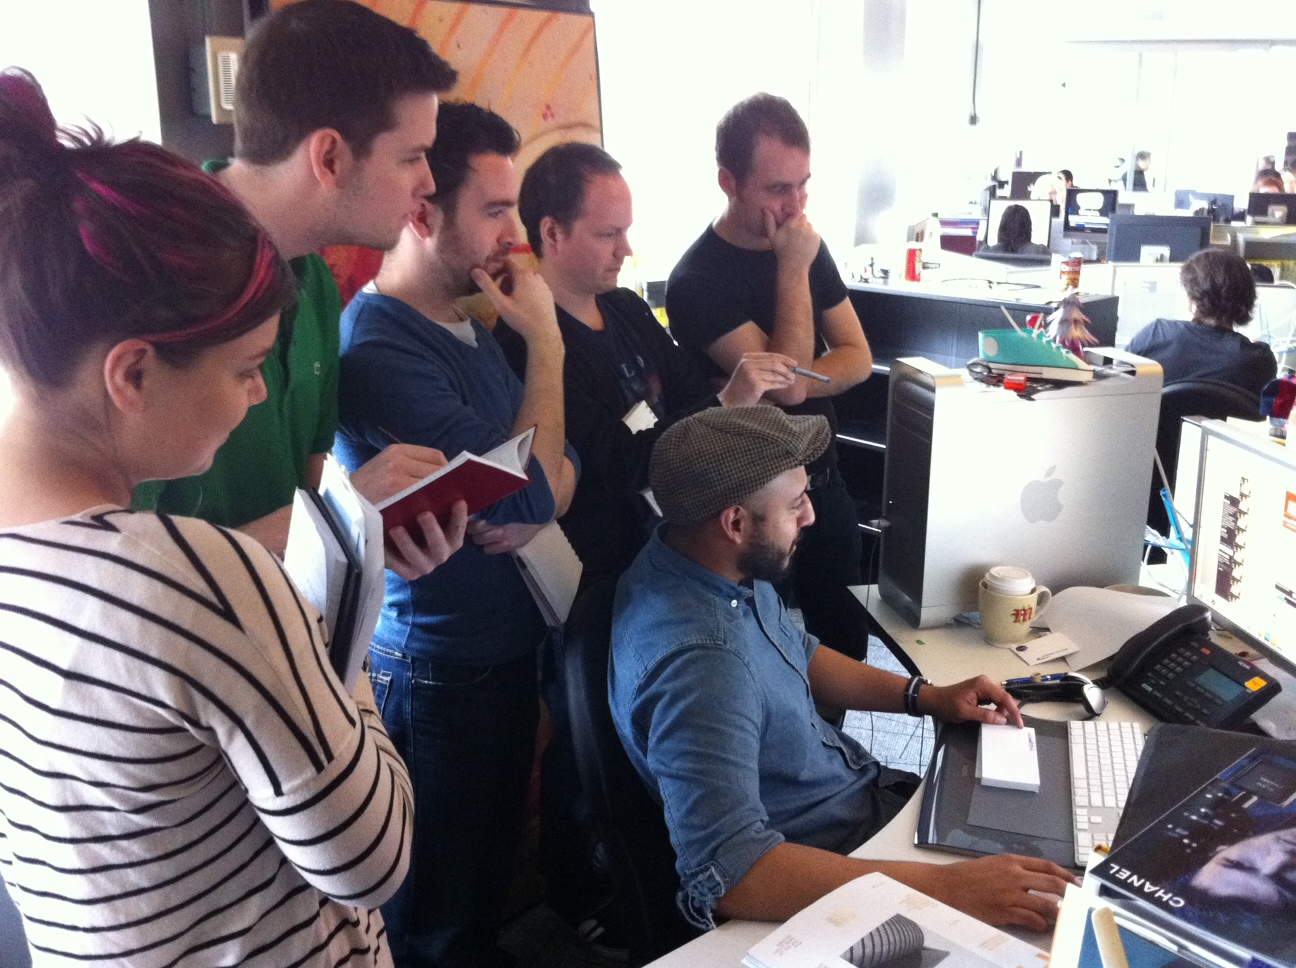 Tumblr Tuesday: Hovering Art Directors caught on camera (mostly males in NYC)